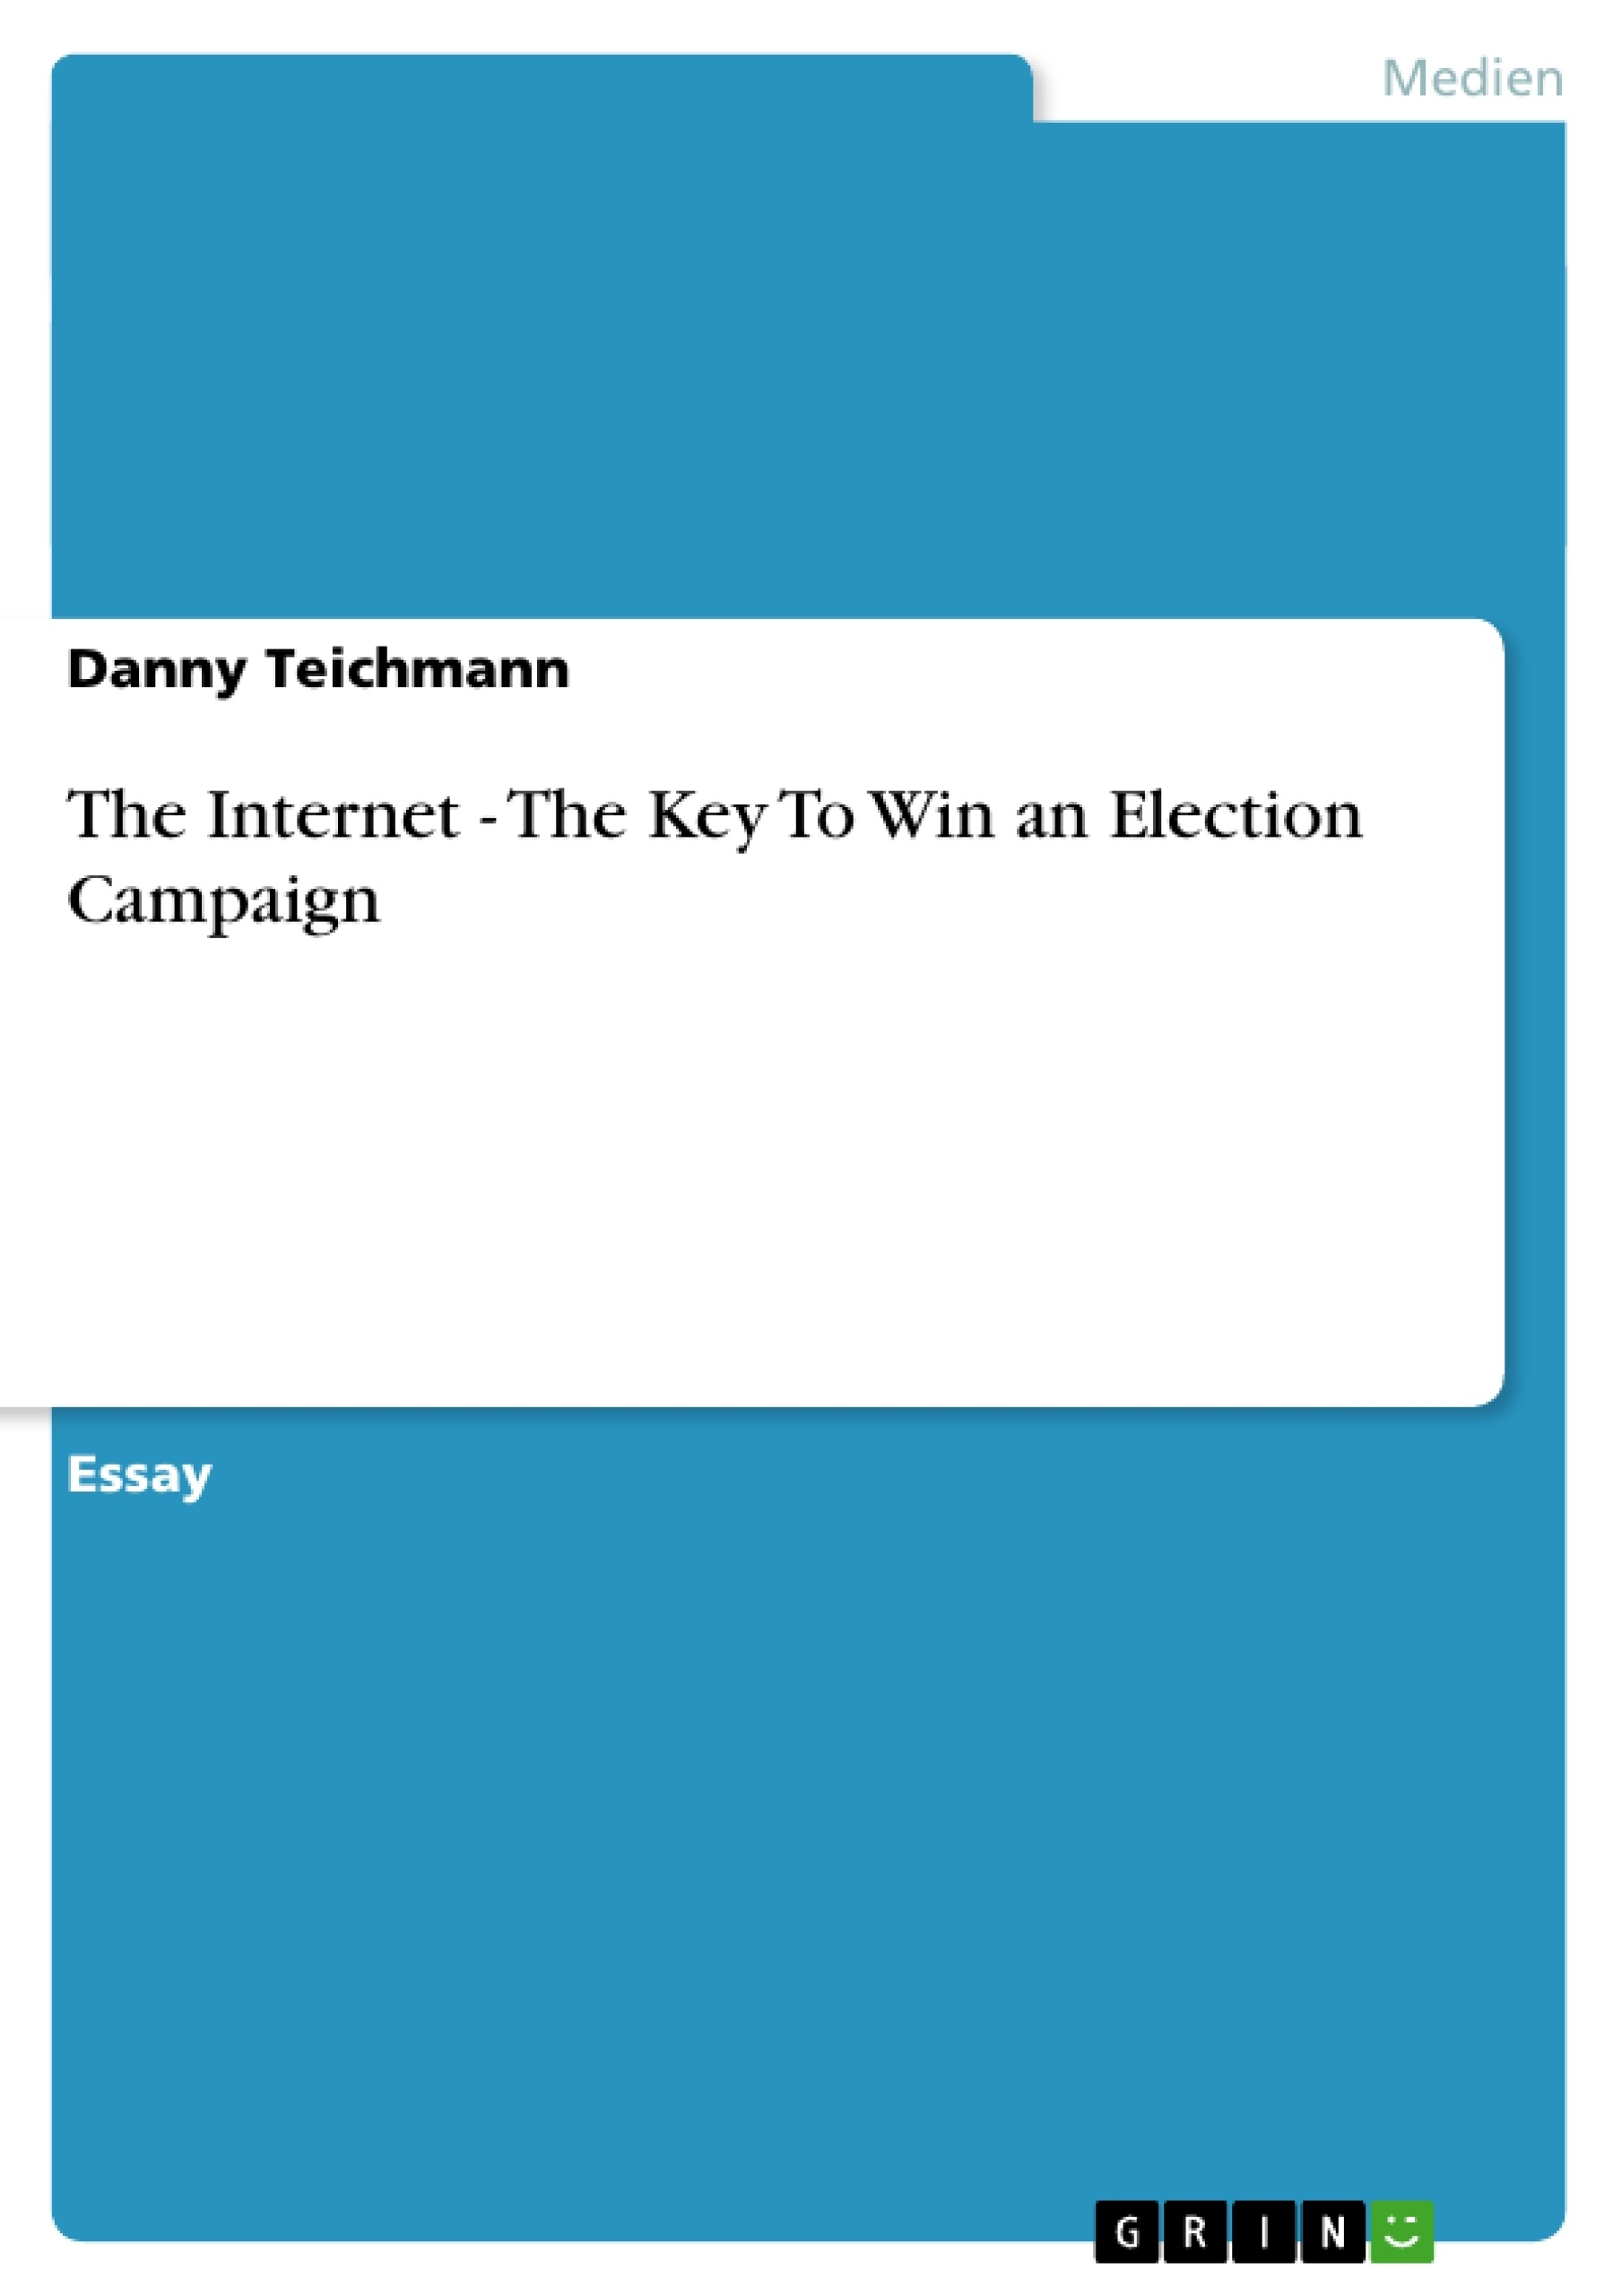 Titel: The Internet - The Key To Win an Election Campaign